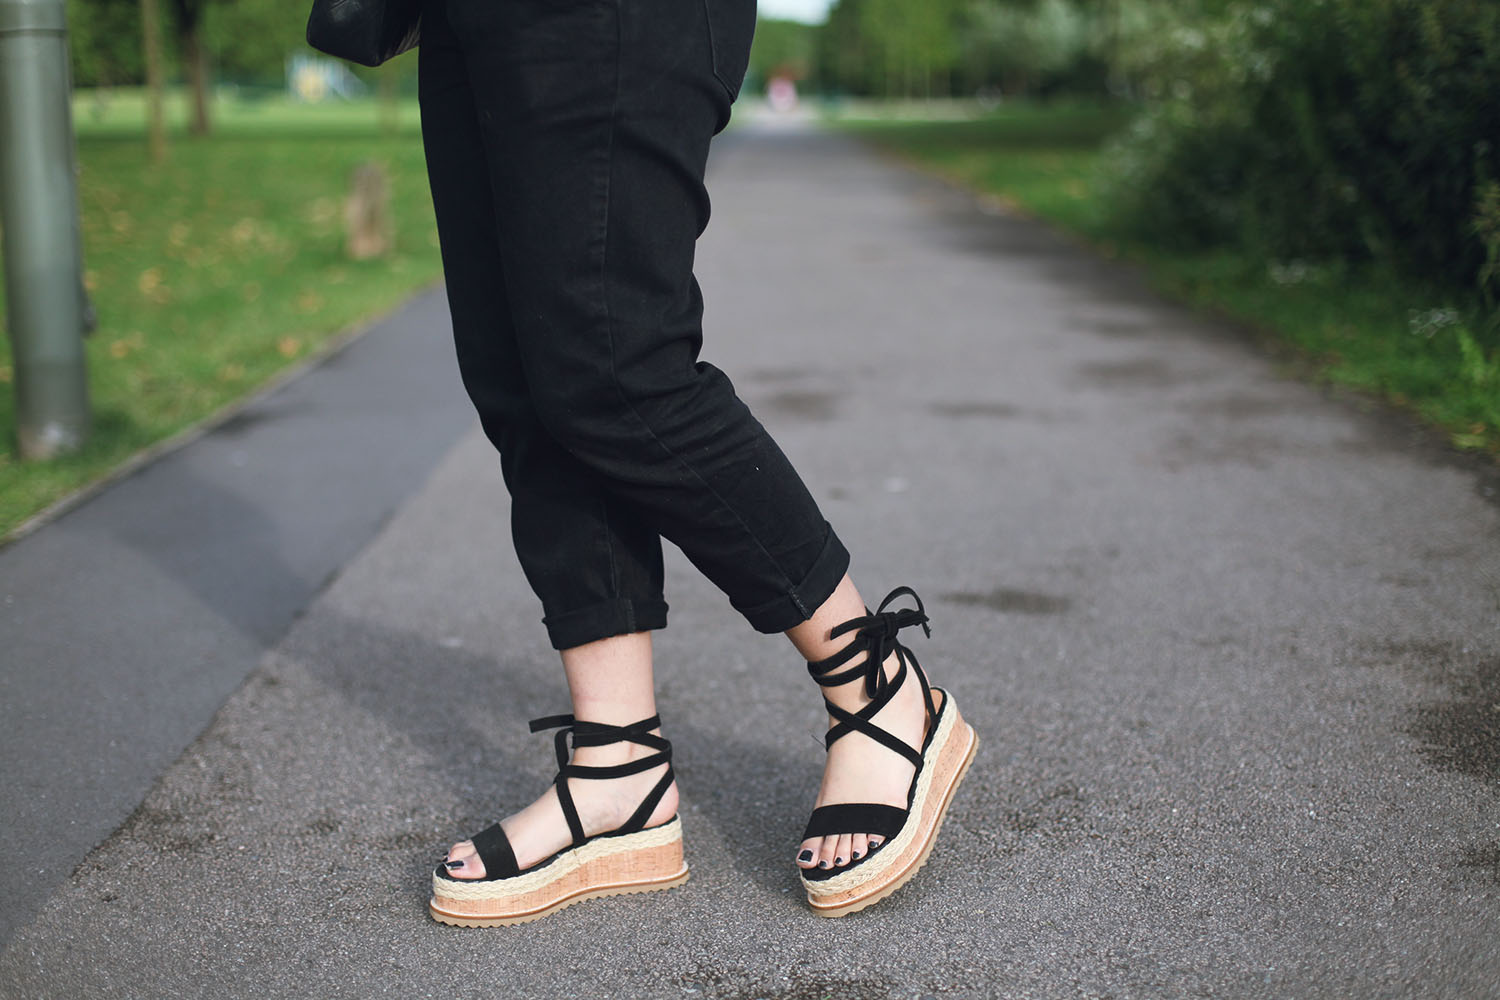 rubbersouled espadrilles spring outfit inspiration.jpg